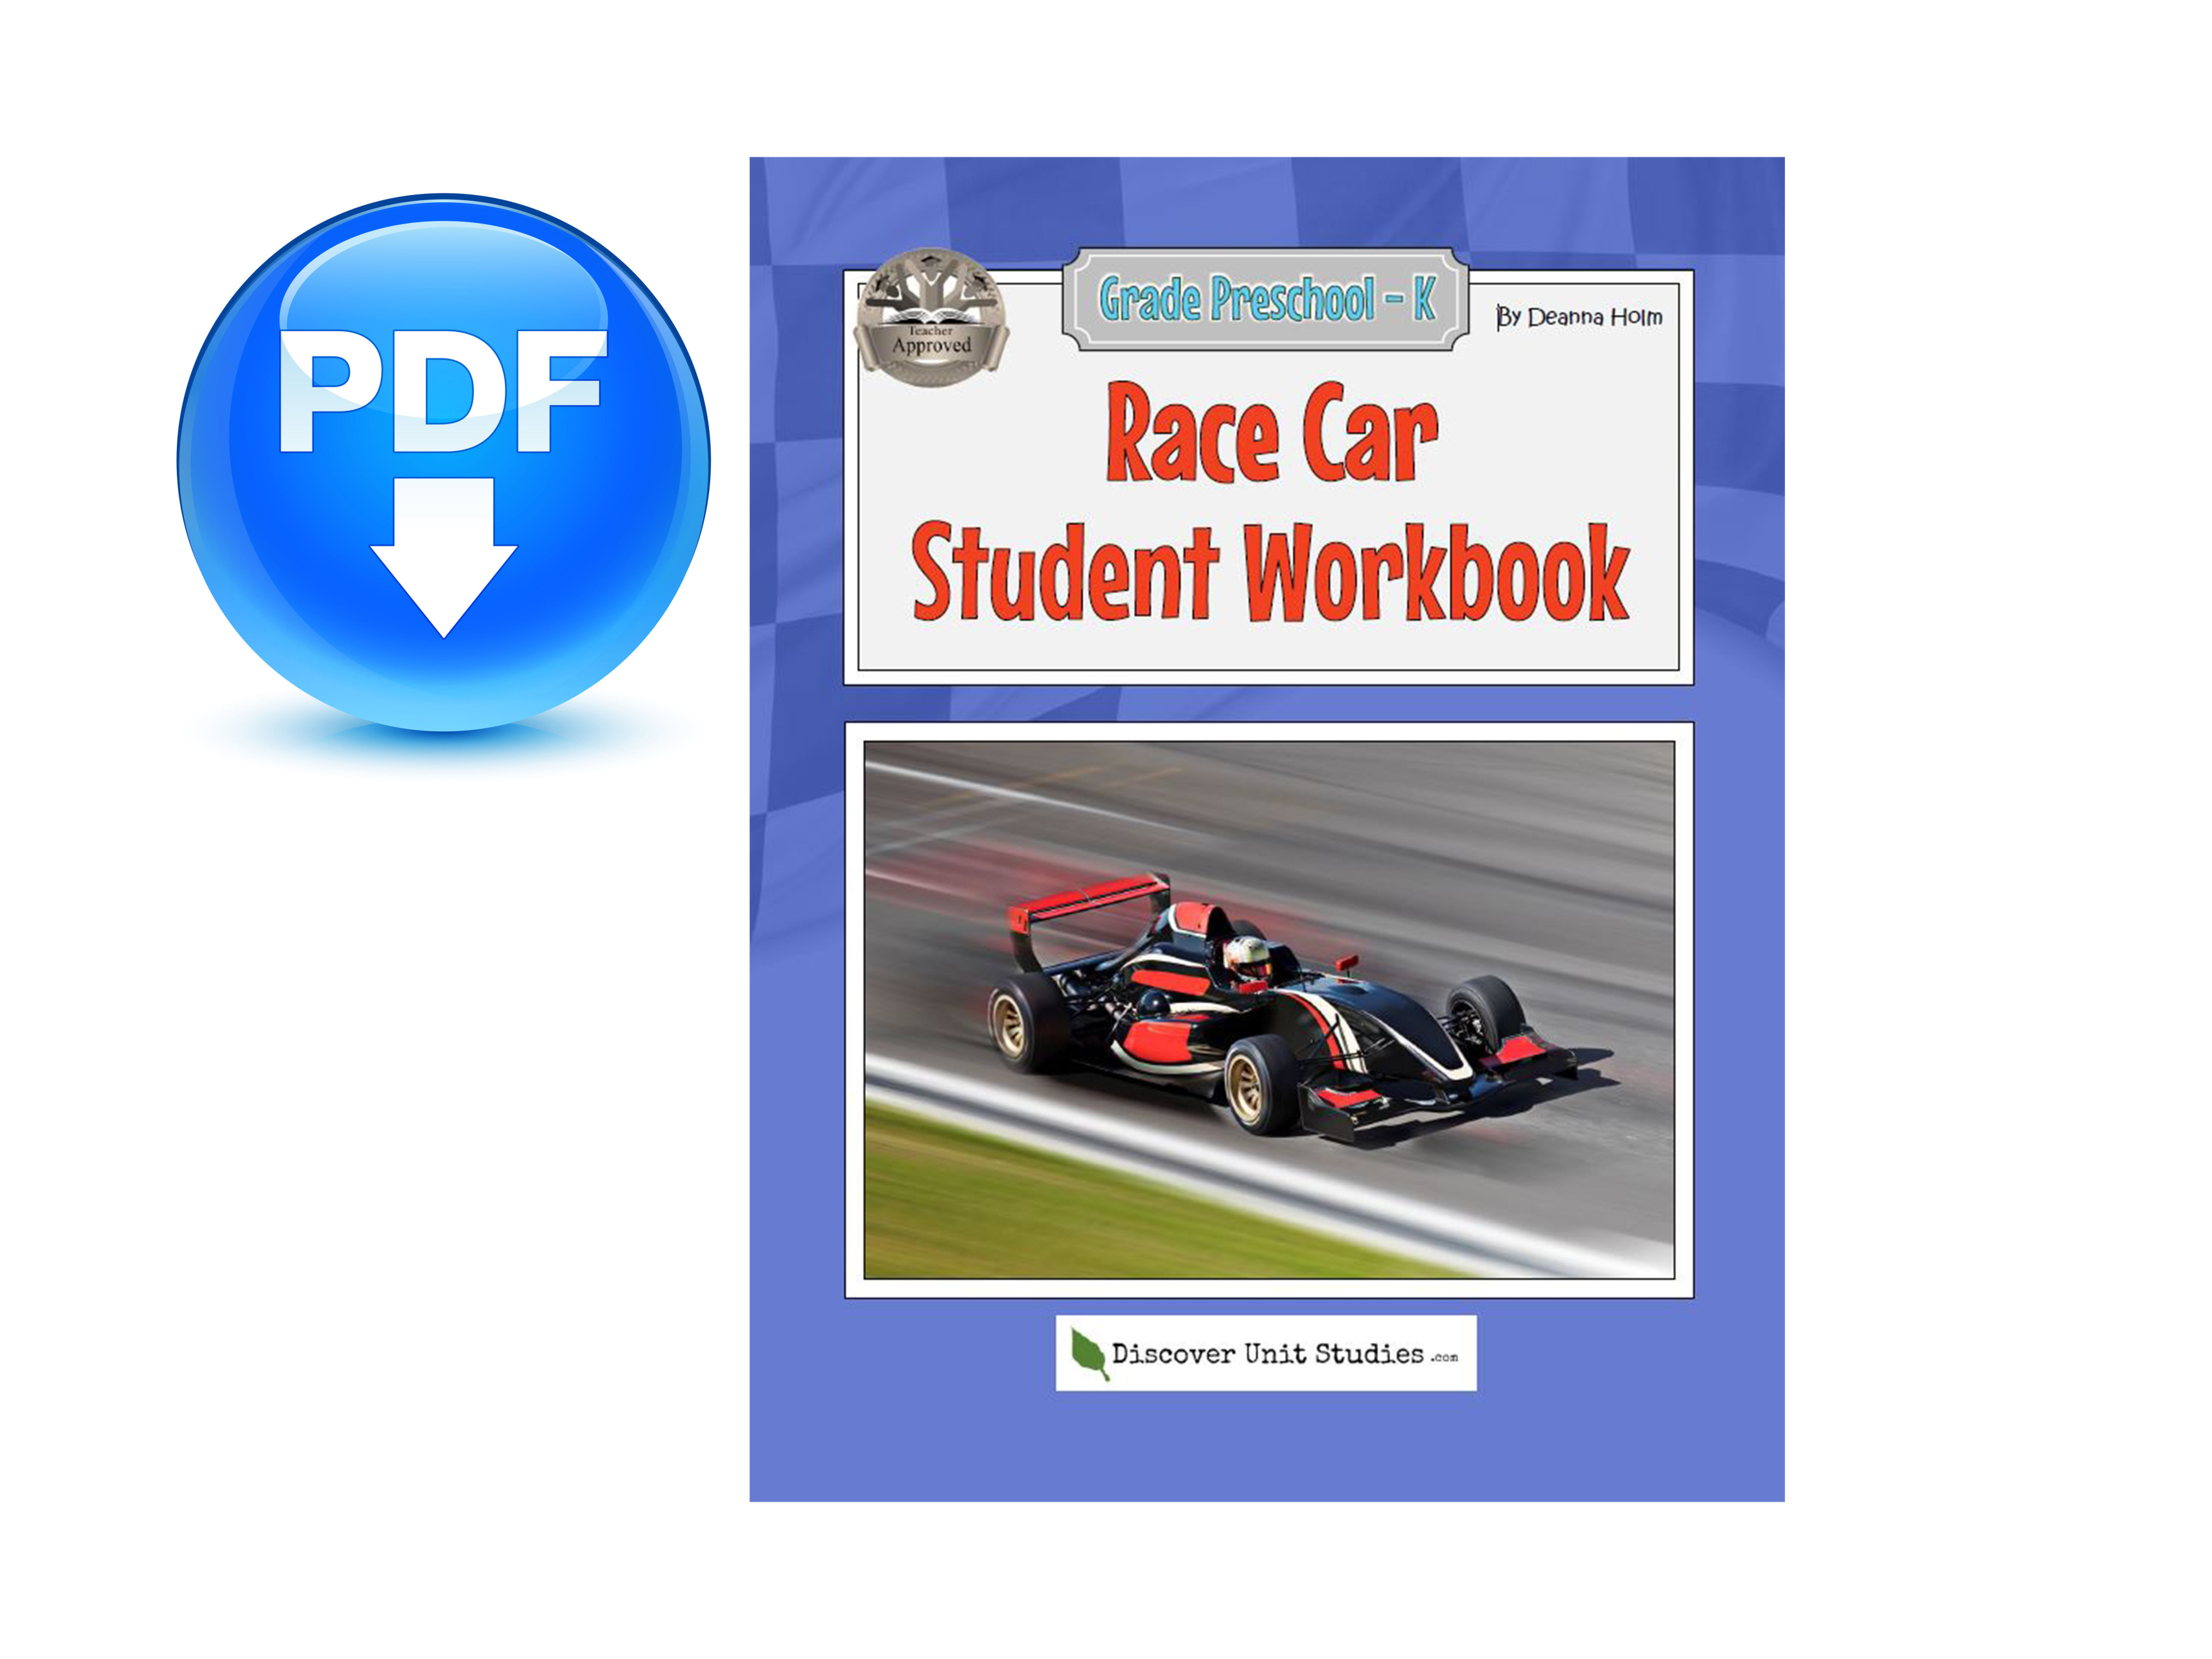 Race Car Student Workbook Download